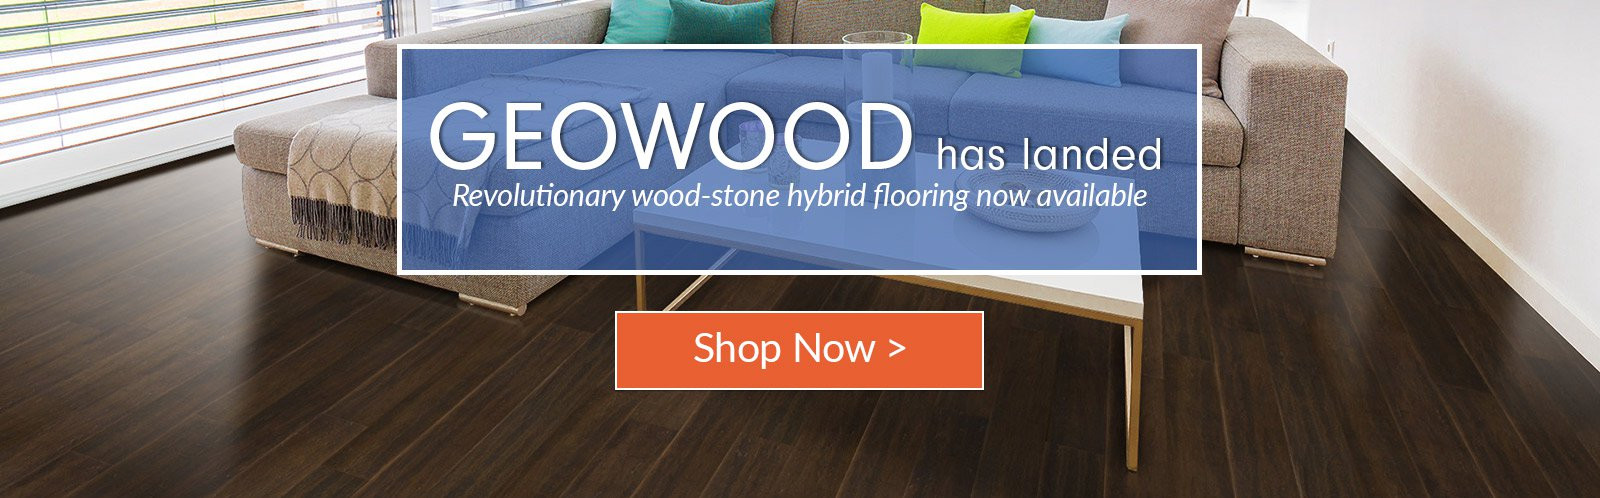 north coast hardwood floor supply of green building construction materials and home decor cali bamboo regarding geowood launch homepage slider